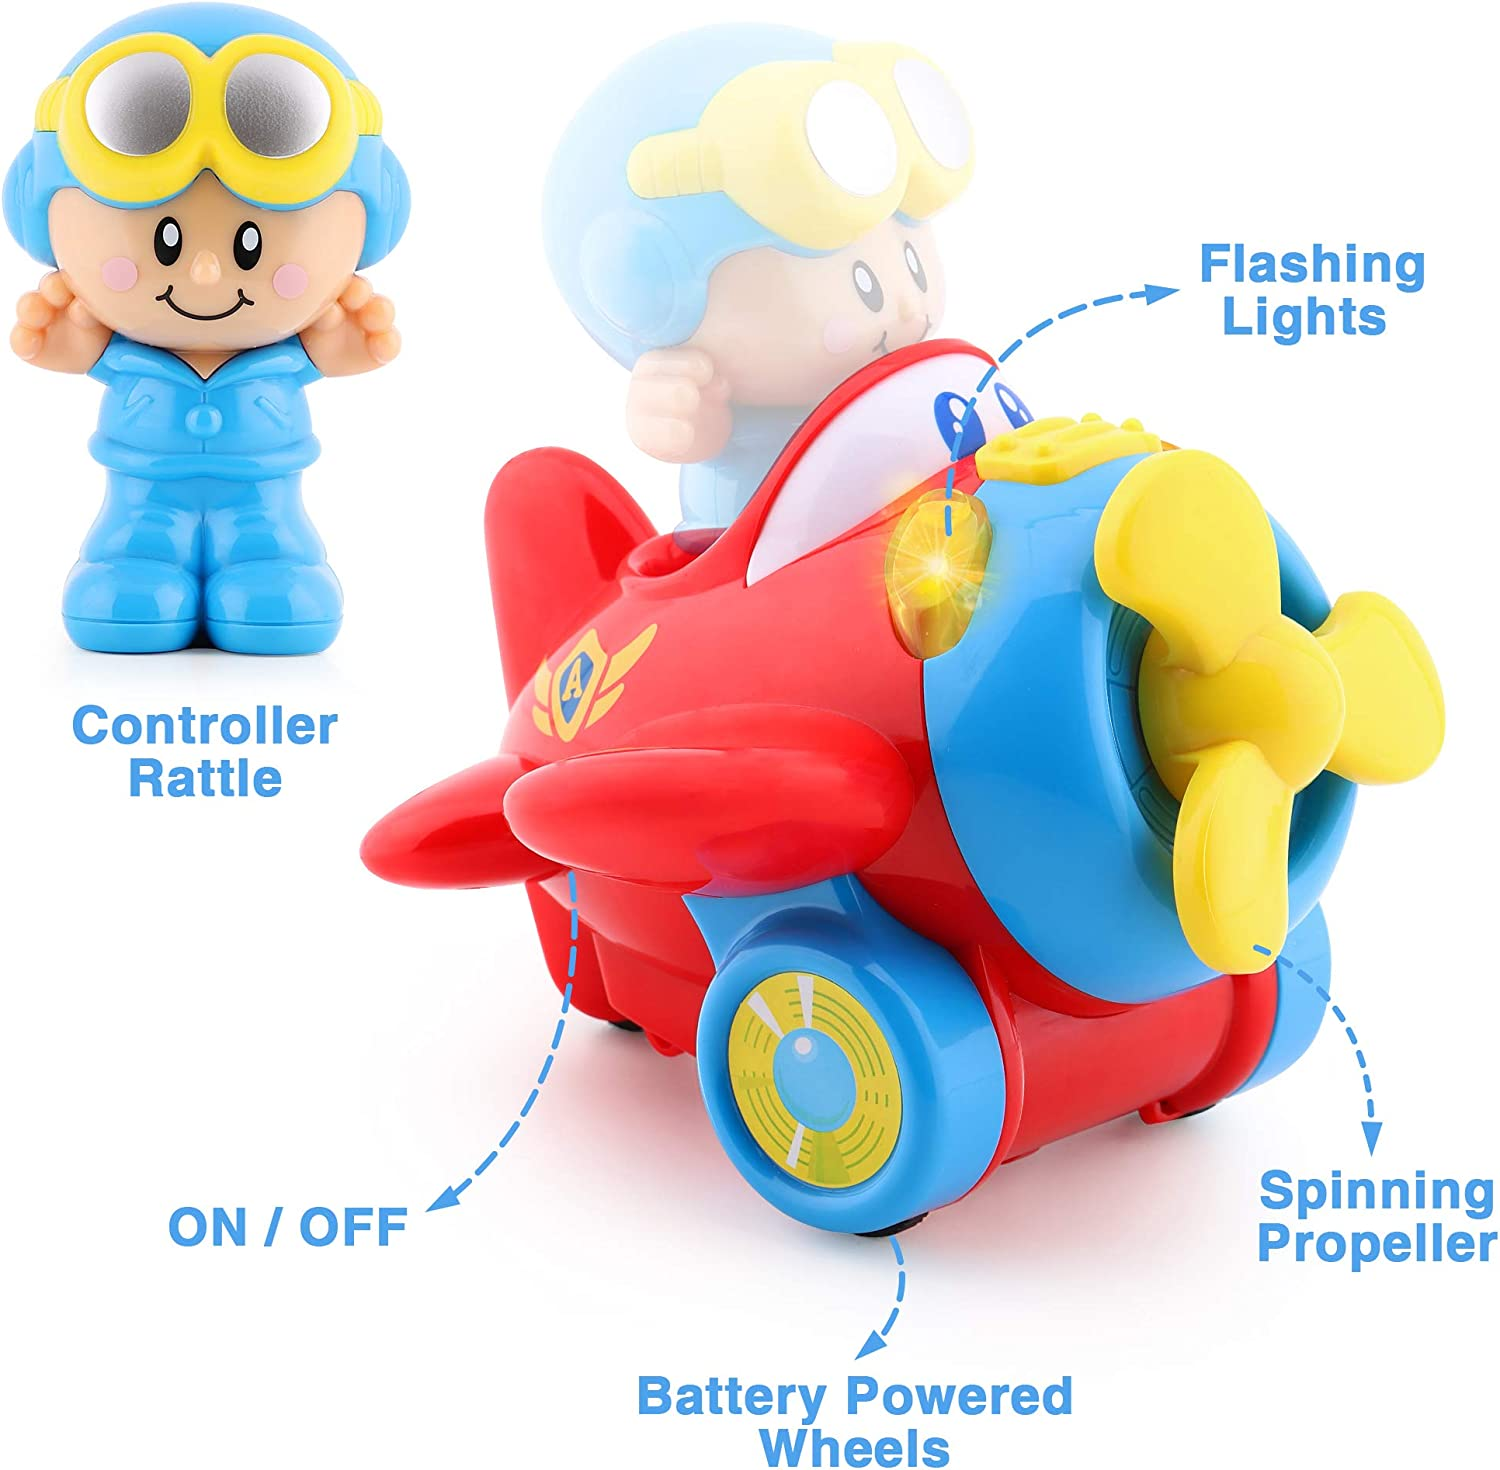 2 3 Year Olds Infants Toddlers Kids Boys Girls Birthday Gift for 12 Electronic Plane n Pilot W//Lights /& Sounds iPlay 18 Month Interactive Crawl Toy Baby Rattles iLearn Baby Musical Airplane Toy